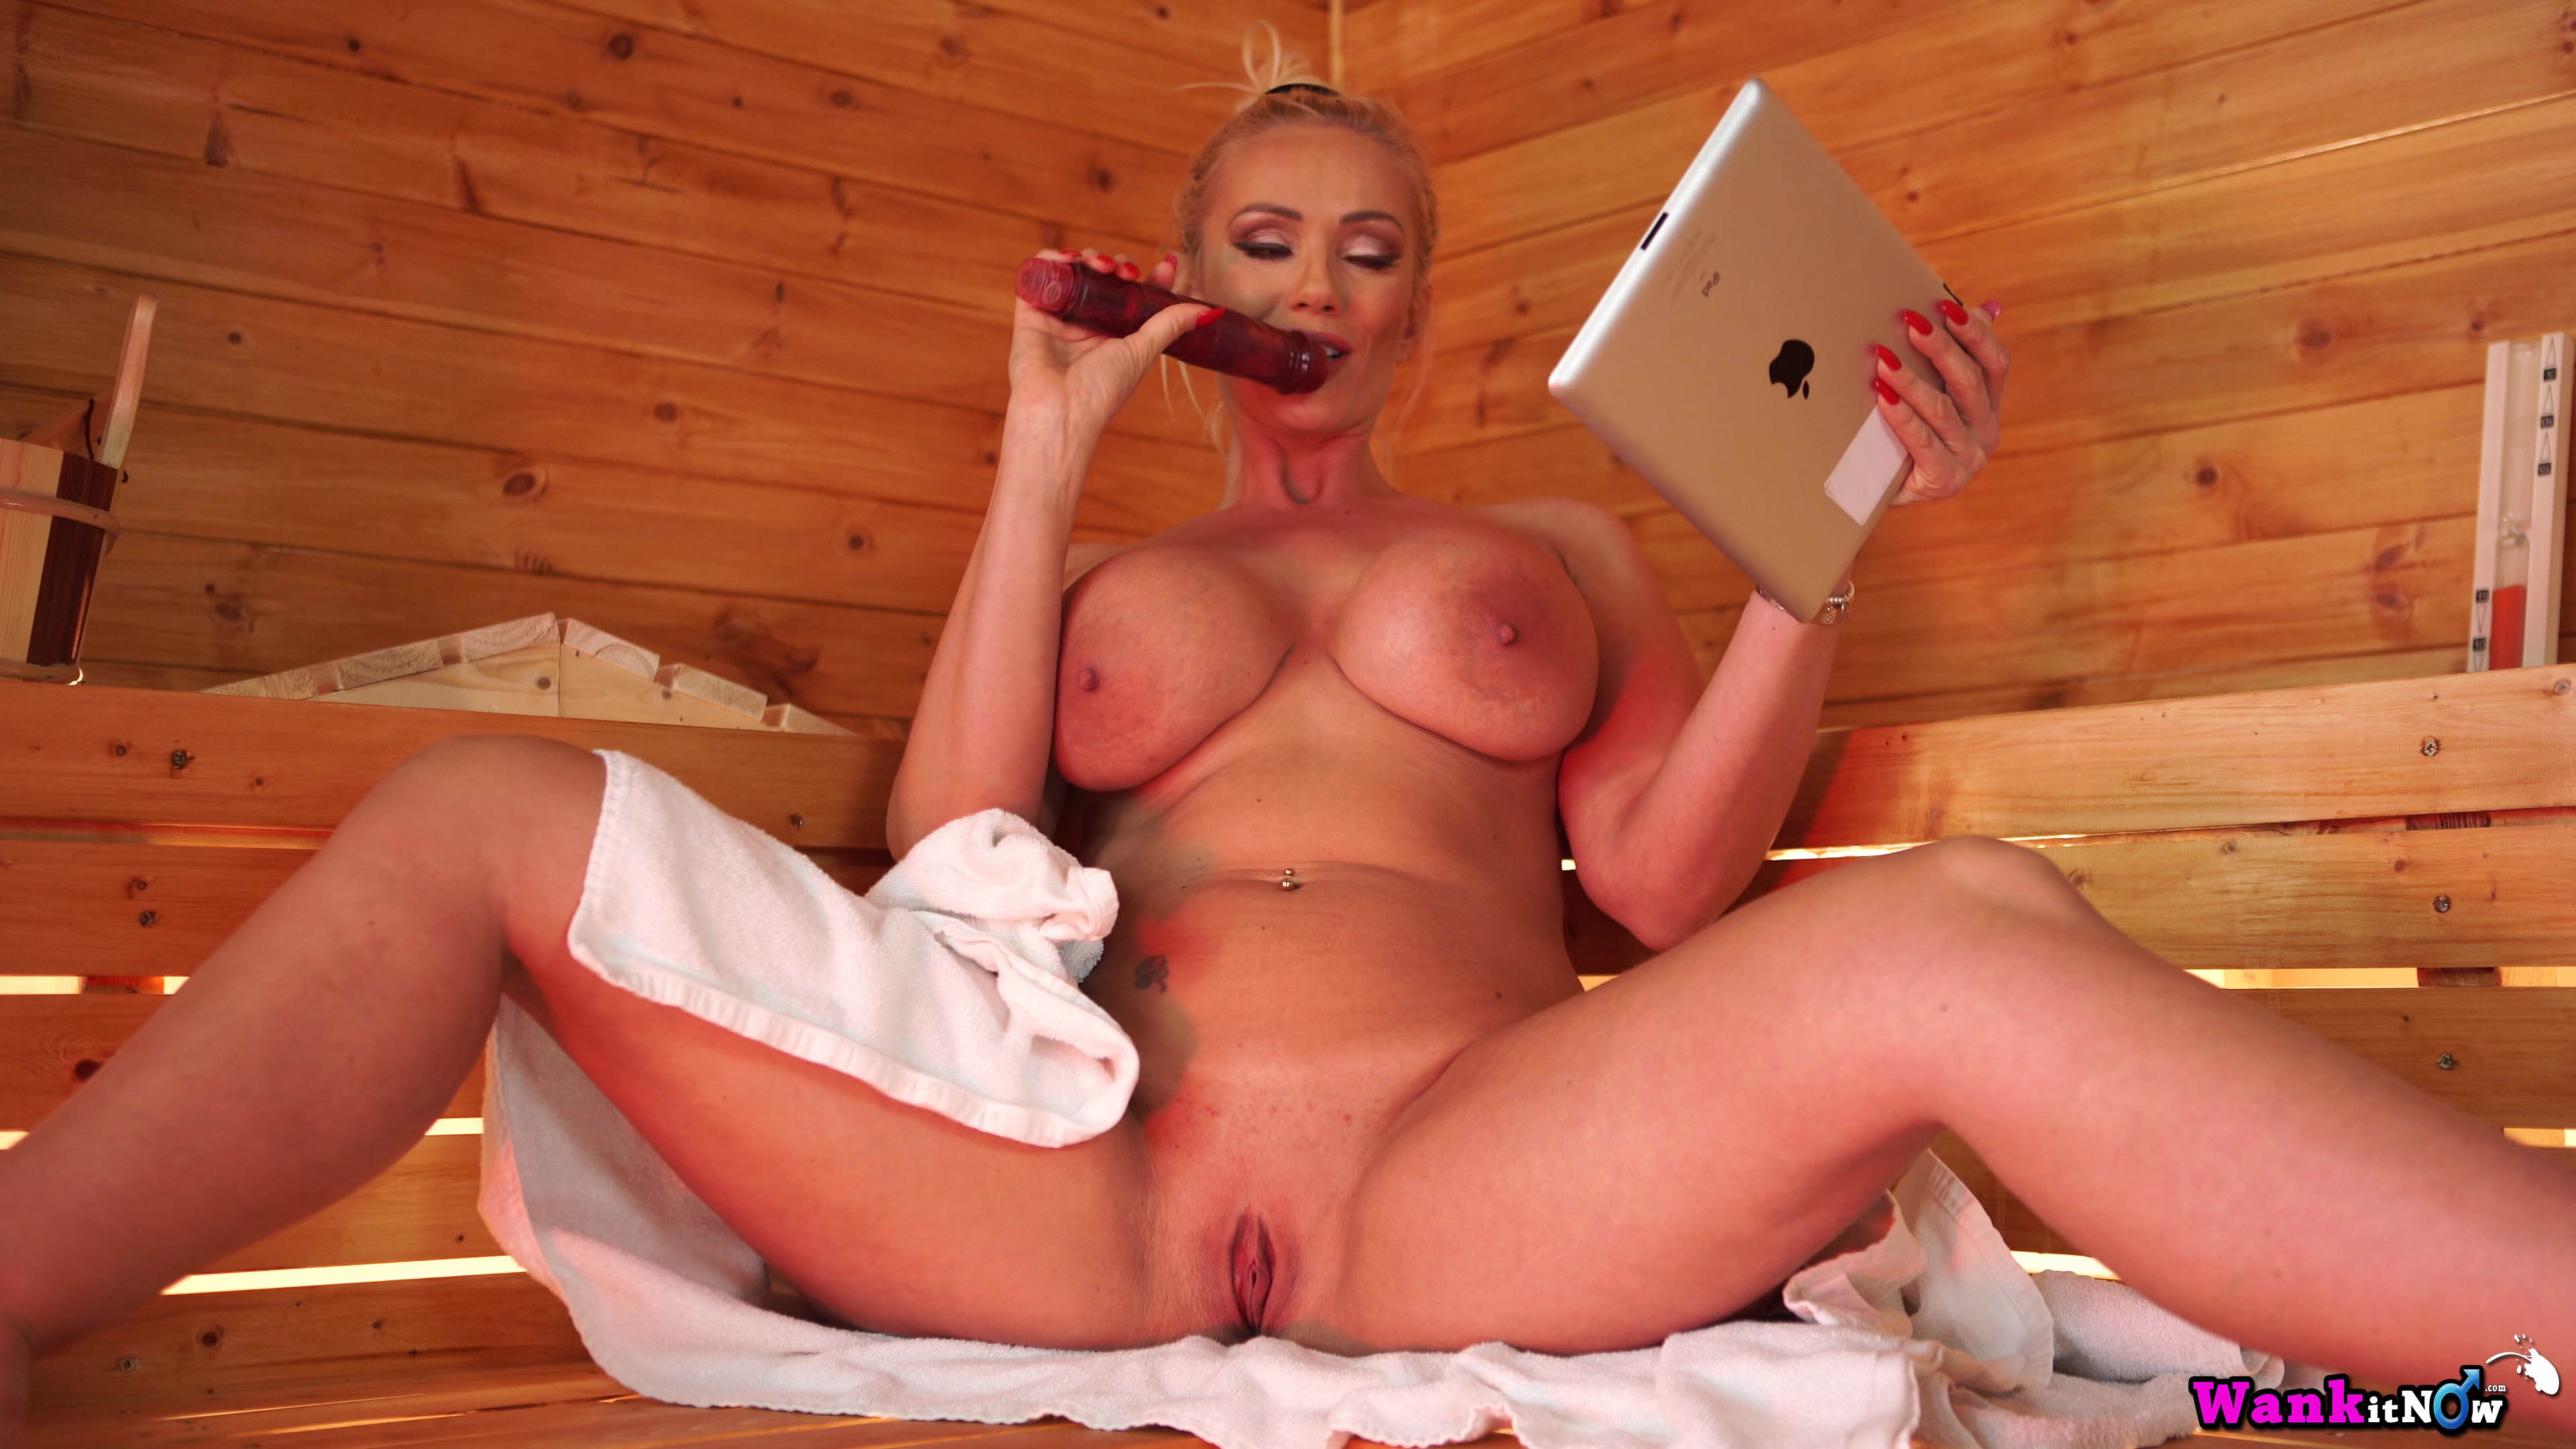 Lucy Zara - Steamy Wank - Free photos of naked girls from ...